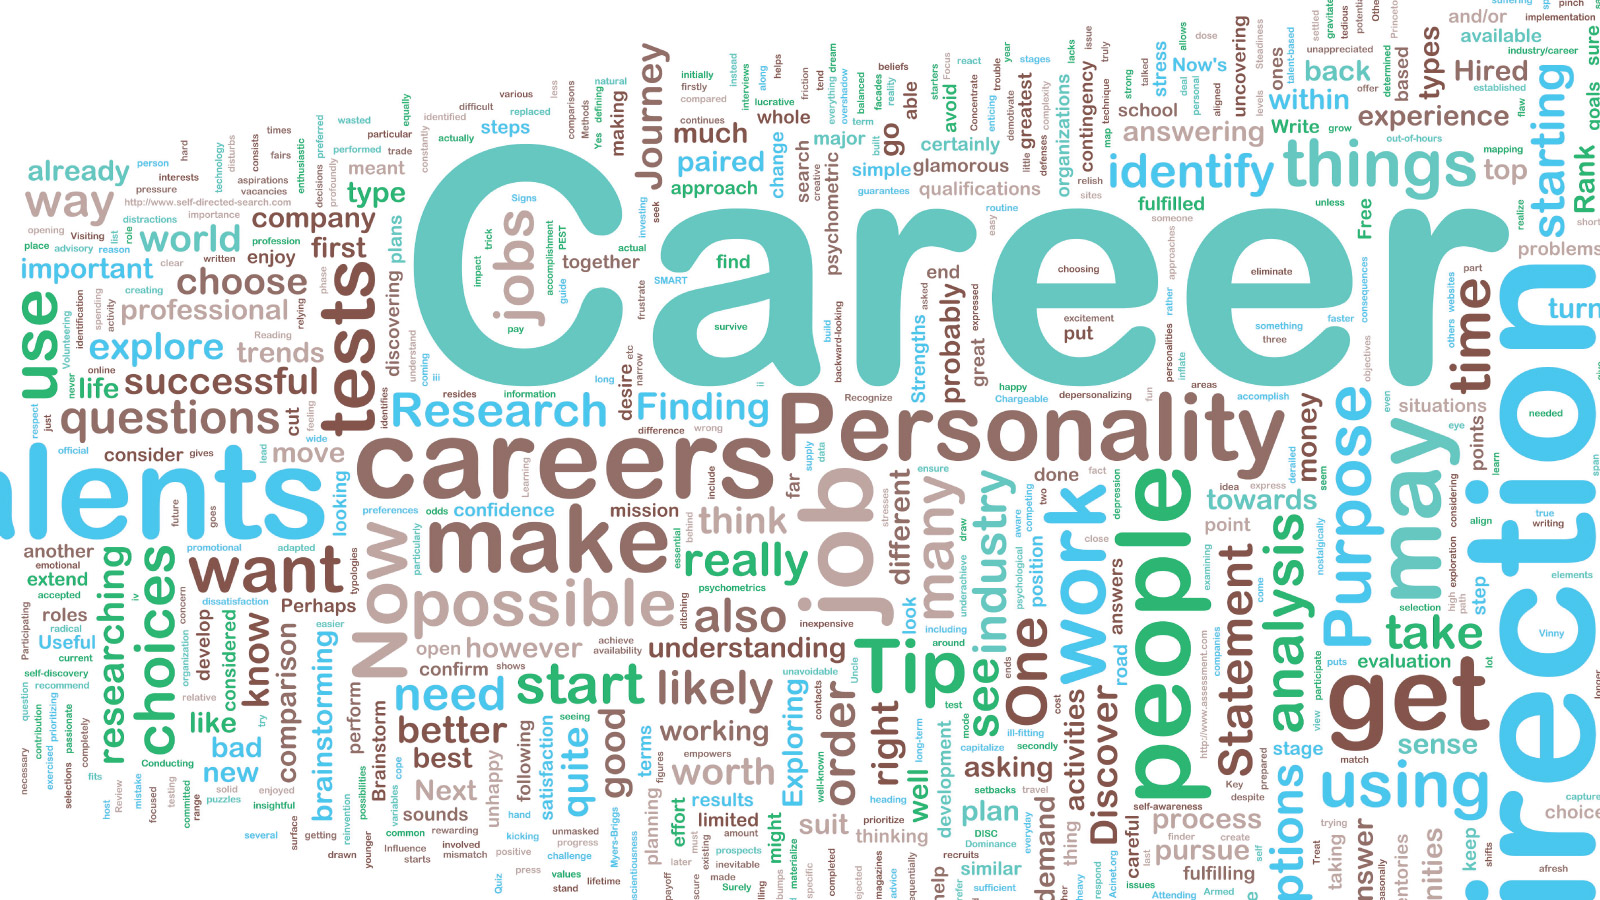 5 of the Most Popular Job Personality Tests | TopResume